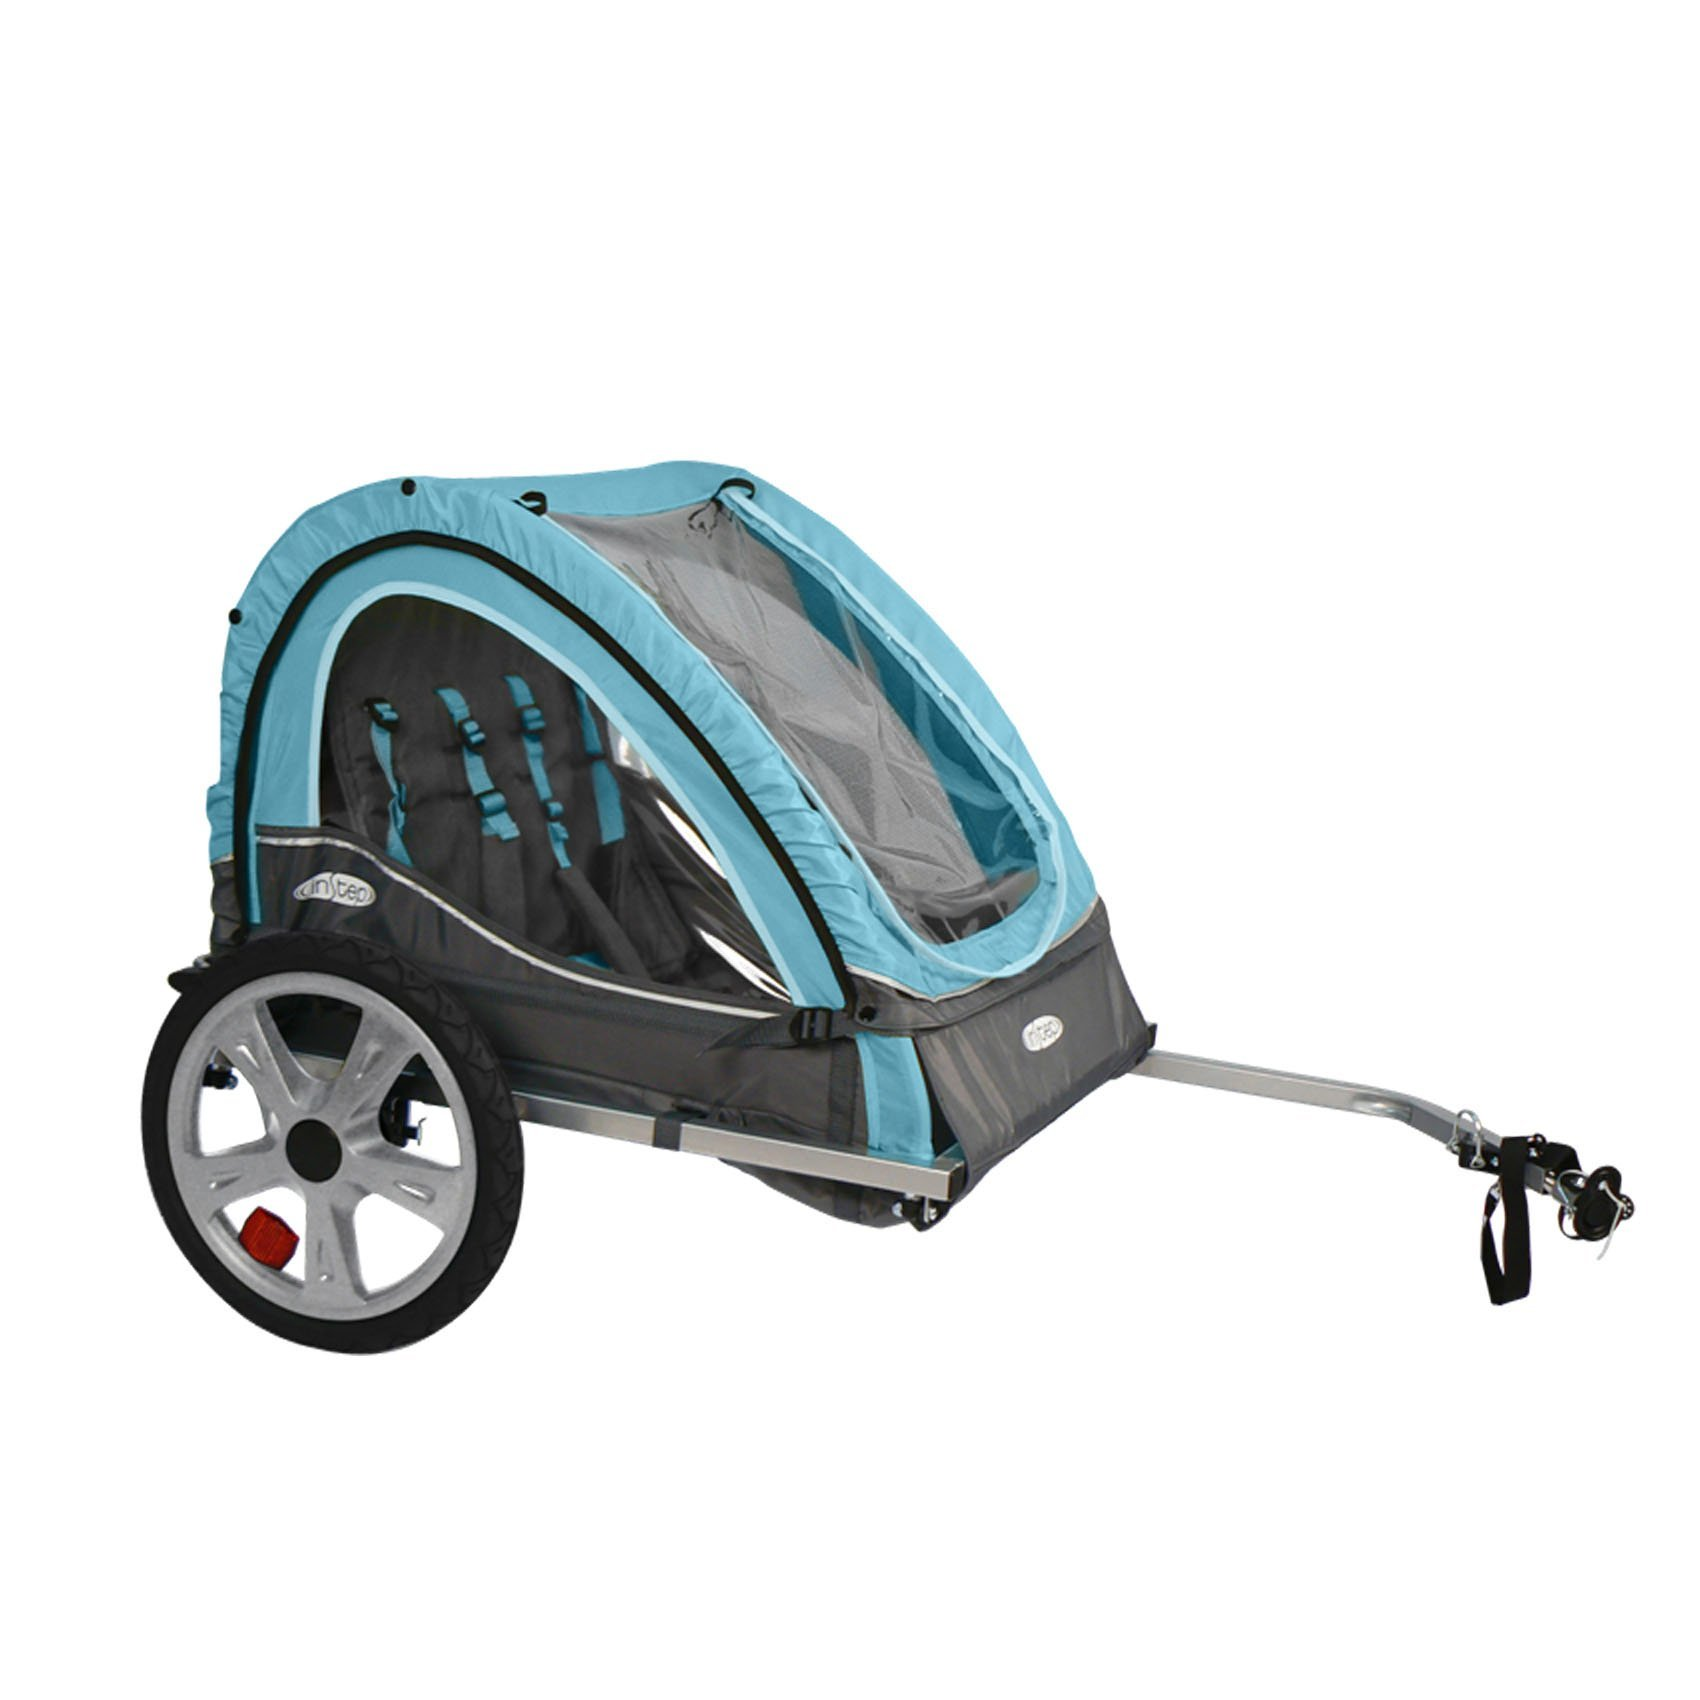 Instep Take 2 Kids/Child Bicycle Trailer, Blue Grey Foldable 2 Passengers (Renewed)